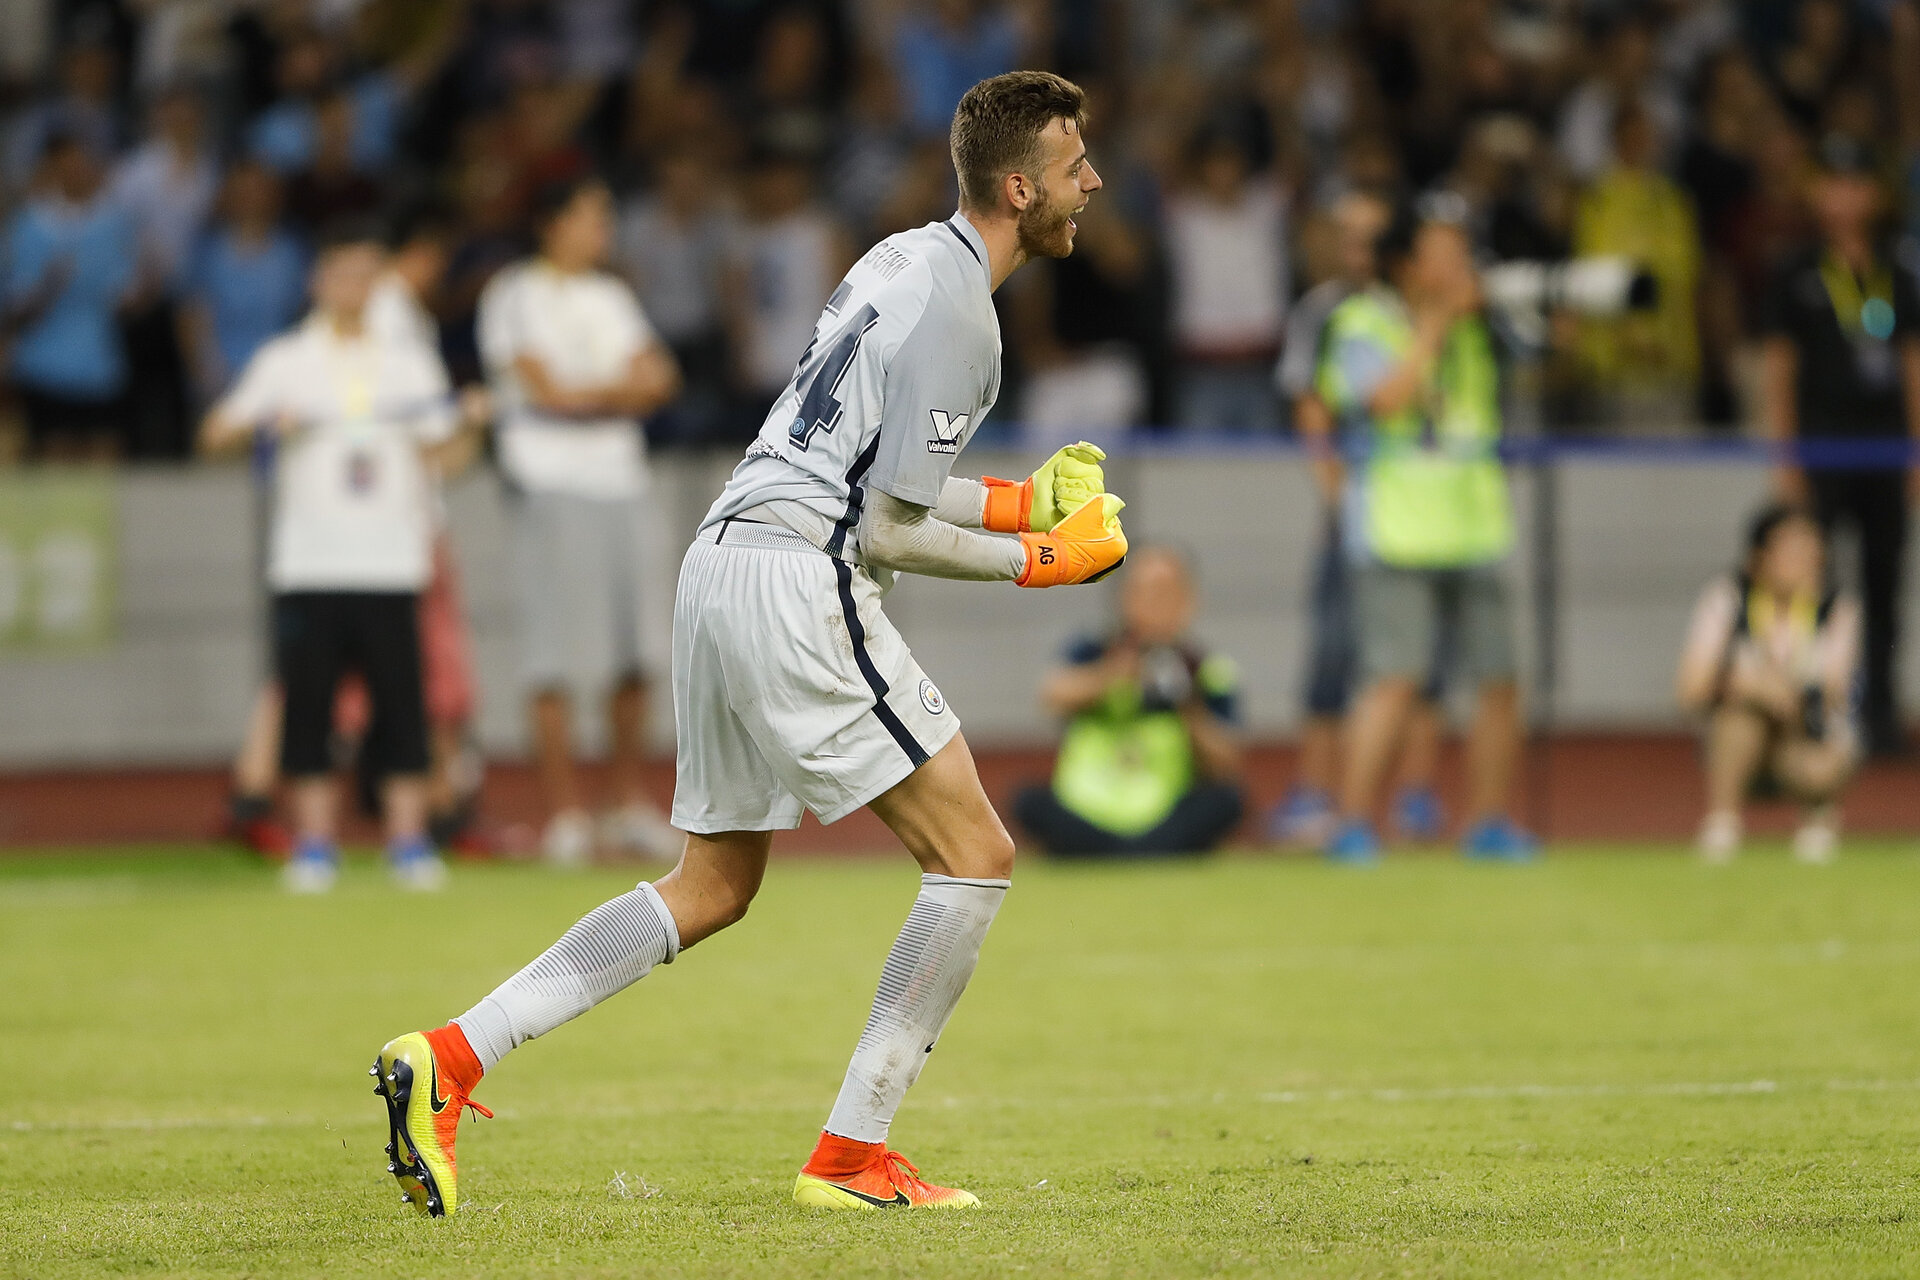 SHENZHEN, CHINA - JULY 28:  Angus Gunn of Manchester City reacts  during the 2016 International Champions Cup match between Manchester City and Borussia Dortmund at Shenzhen Universiade Stadium on July 28, 2016 in Shenzhen, China.  (Photo by Lintao Zhang/Getty Images)